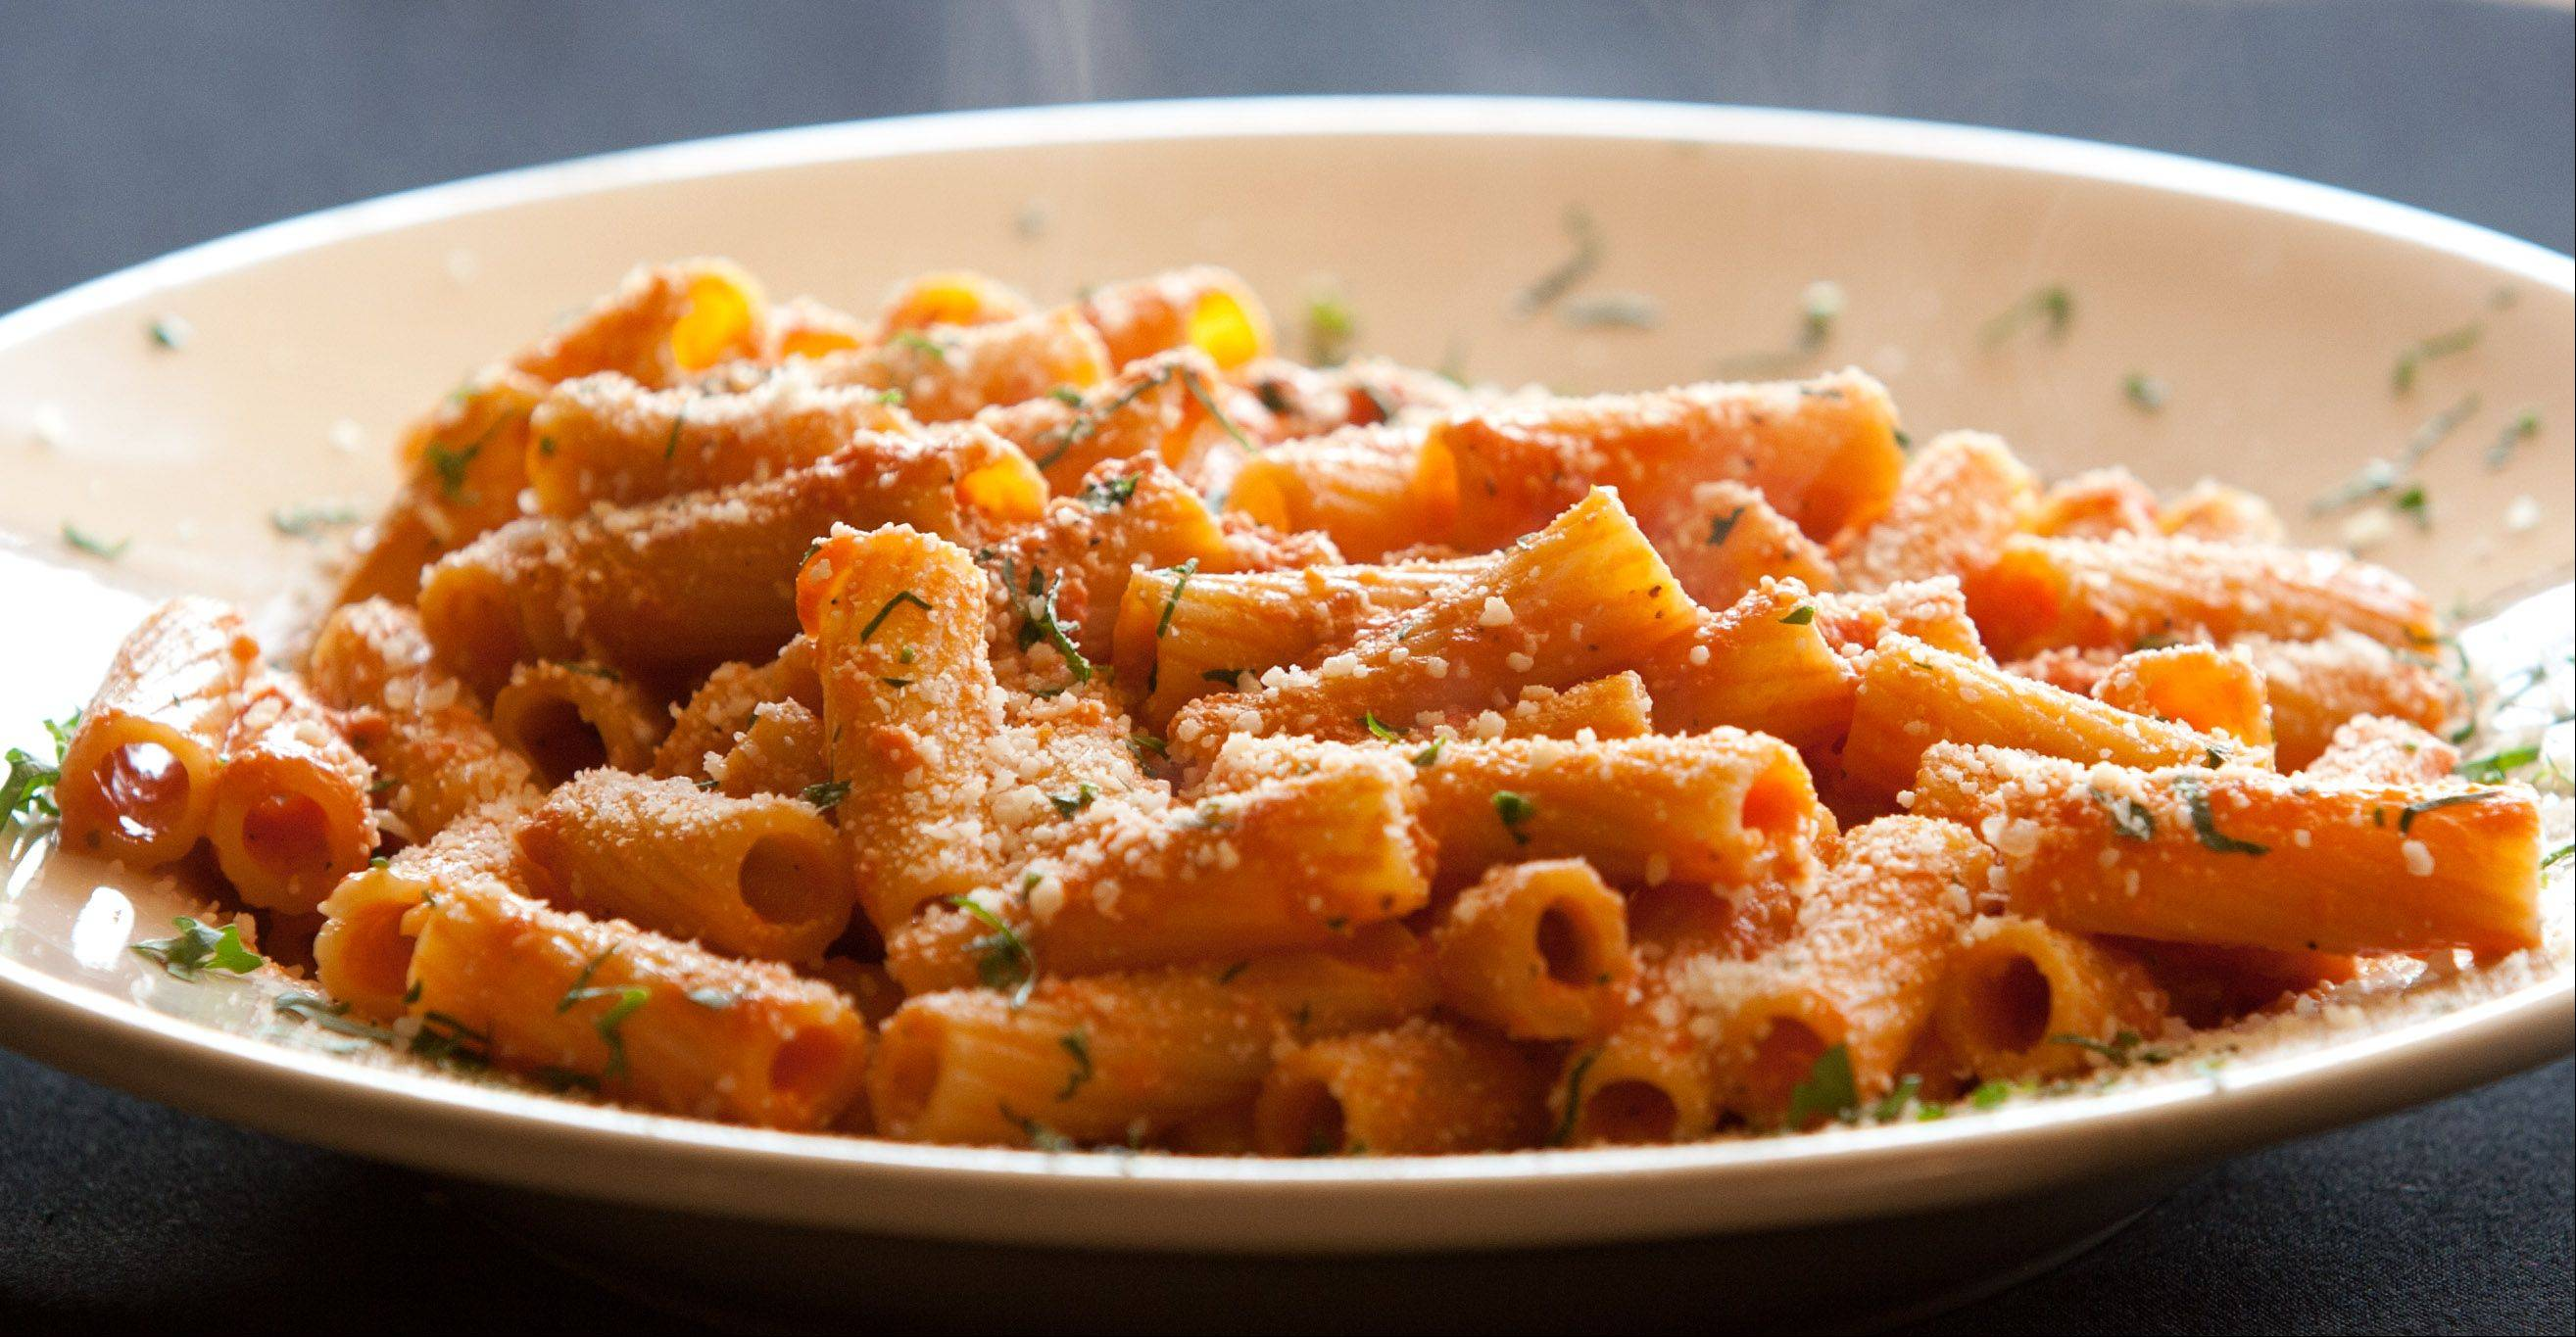 Rigatoni in vodka sauce is expertly prepared at Navarro's of Naperville, located downstairs at Country Lakes Golf Course.